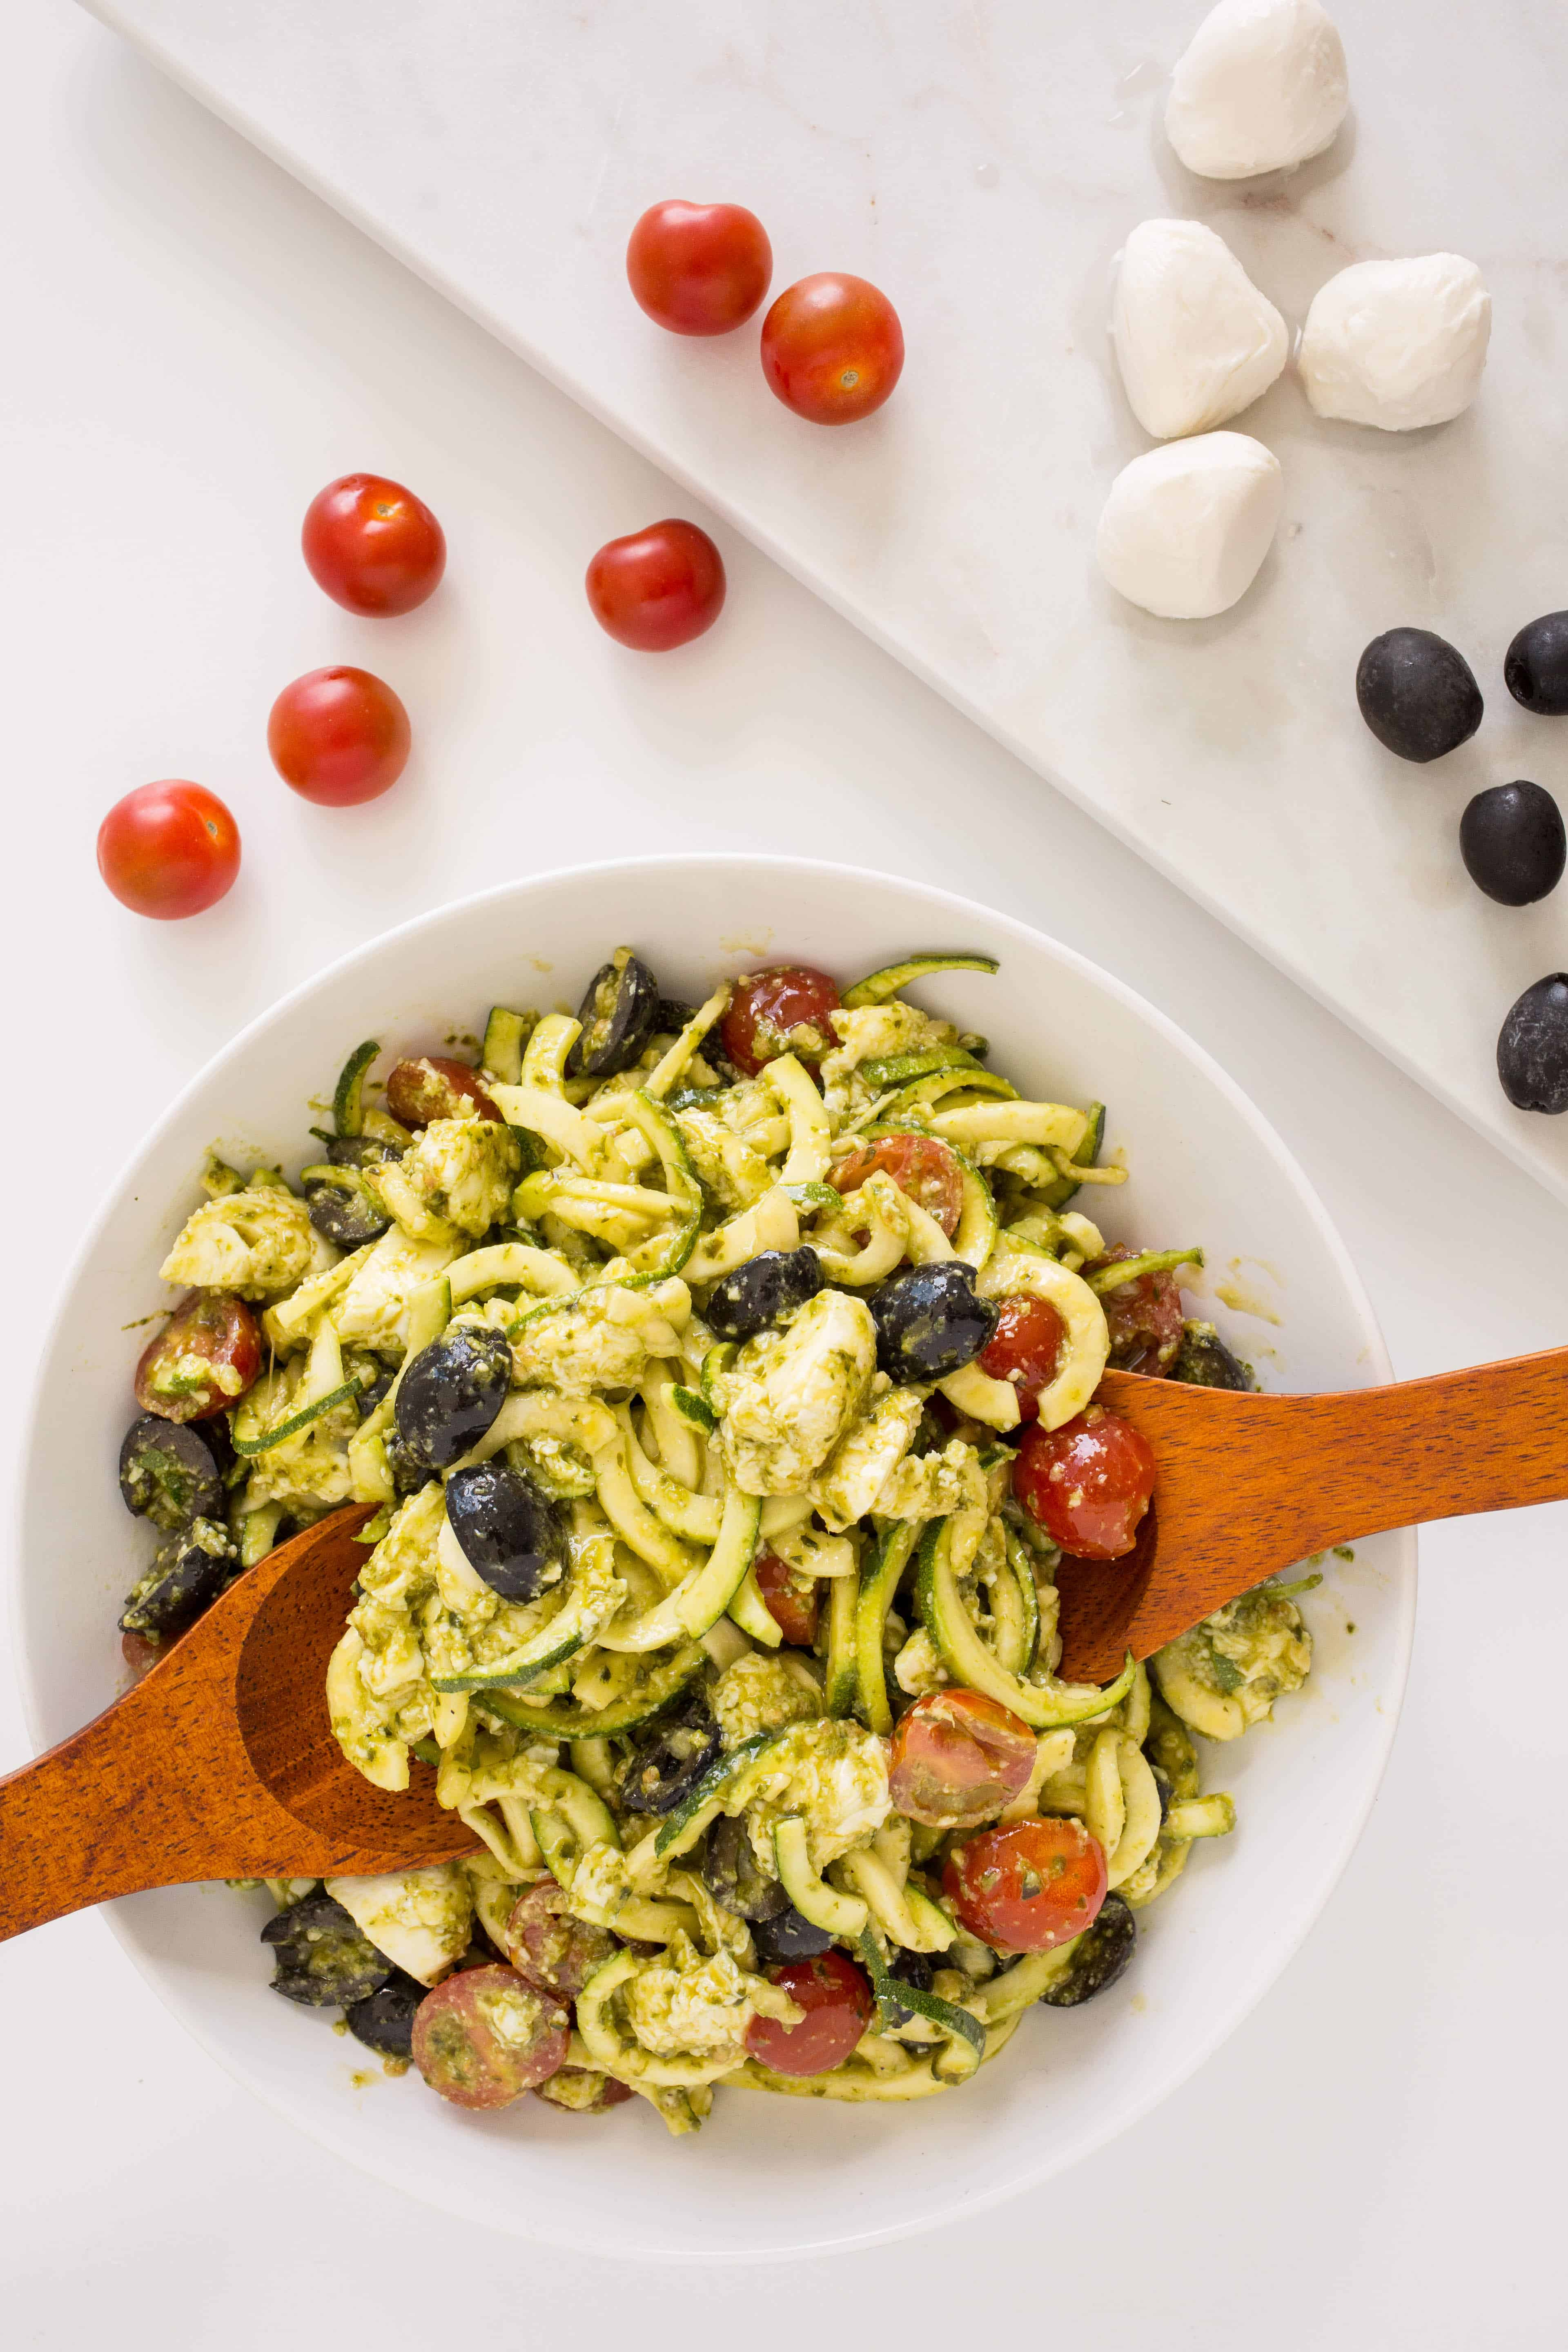 Mozzarella, Tomato and Pesto Zucchini Pasta Salad